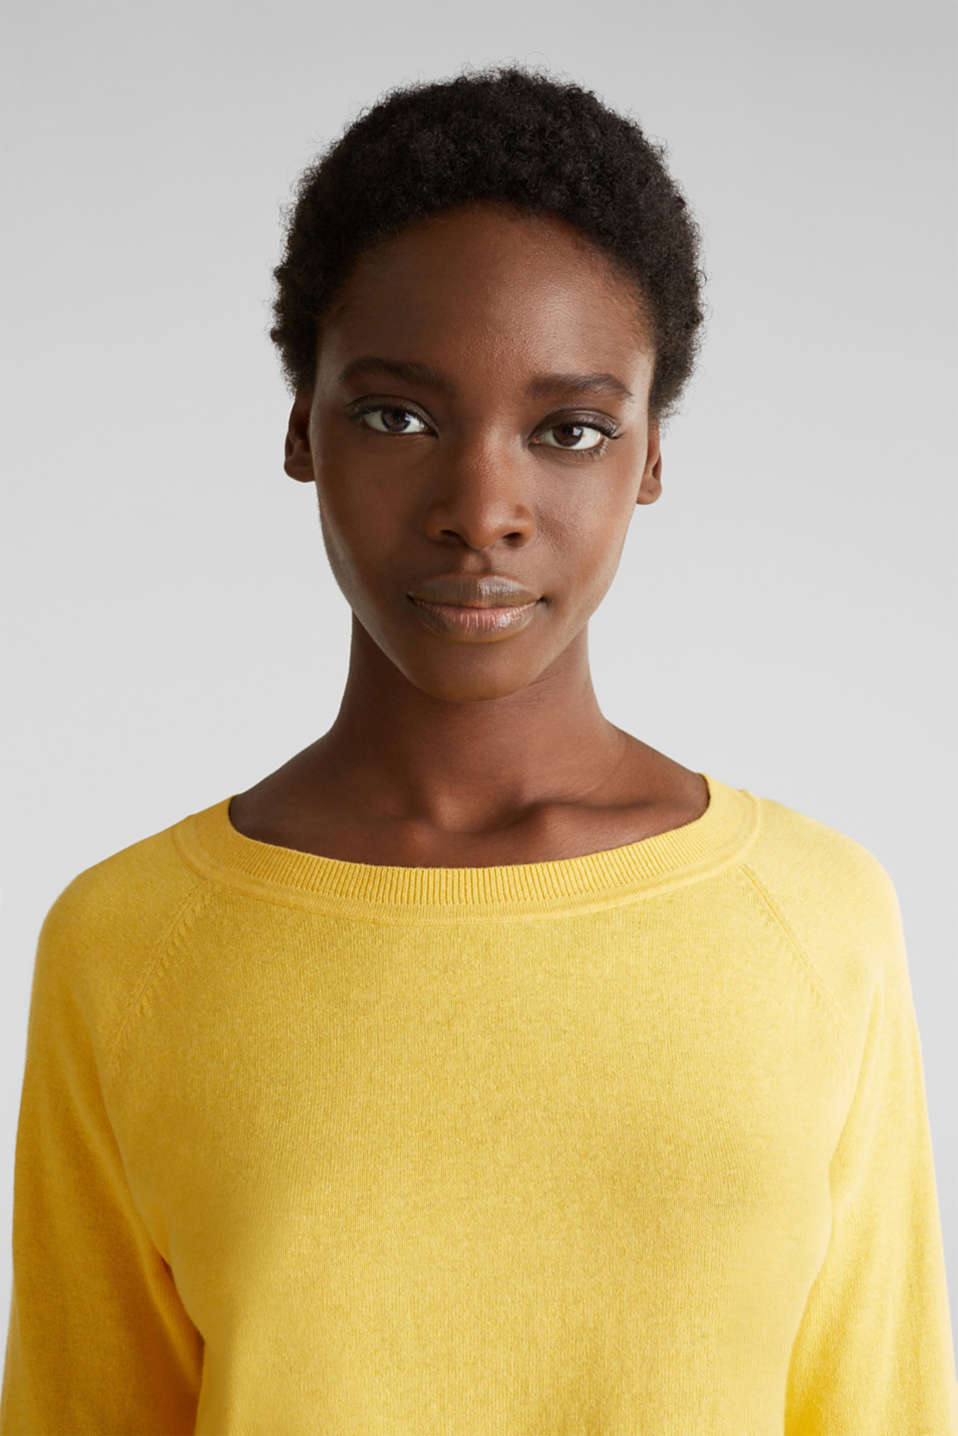 With linen: Jumper with open-work patterned details, YELLOW, detail image number 5